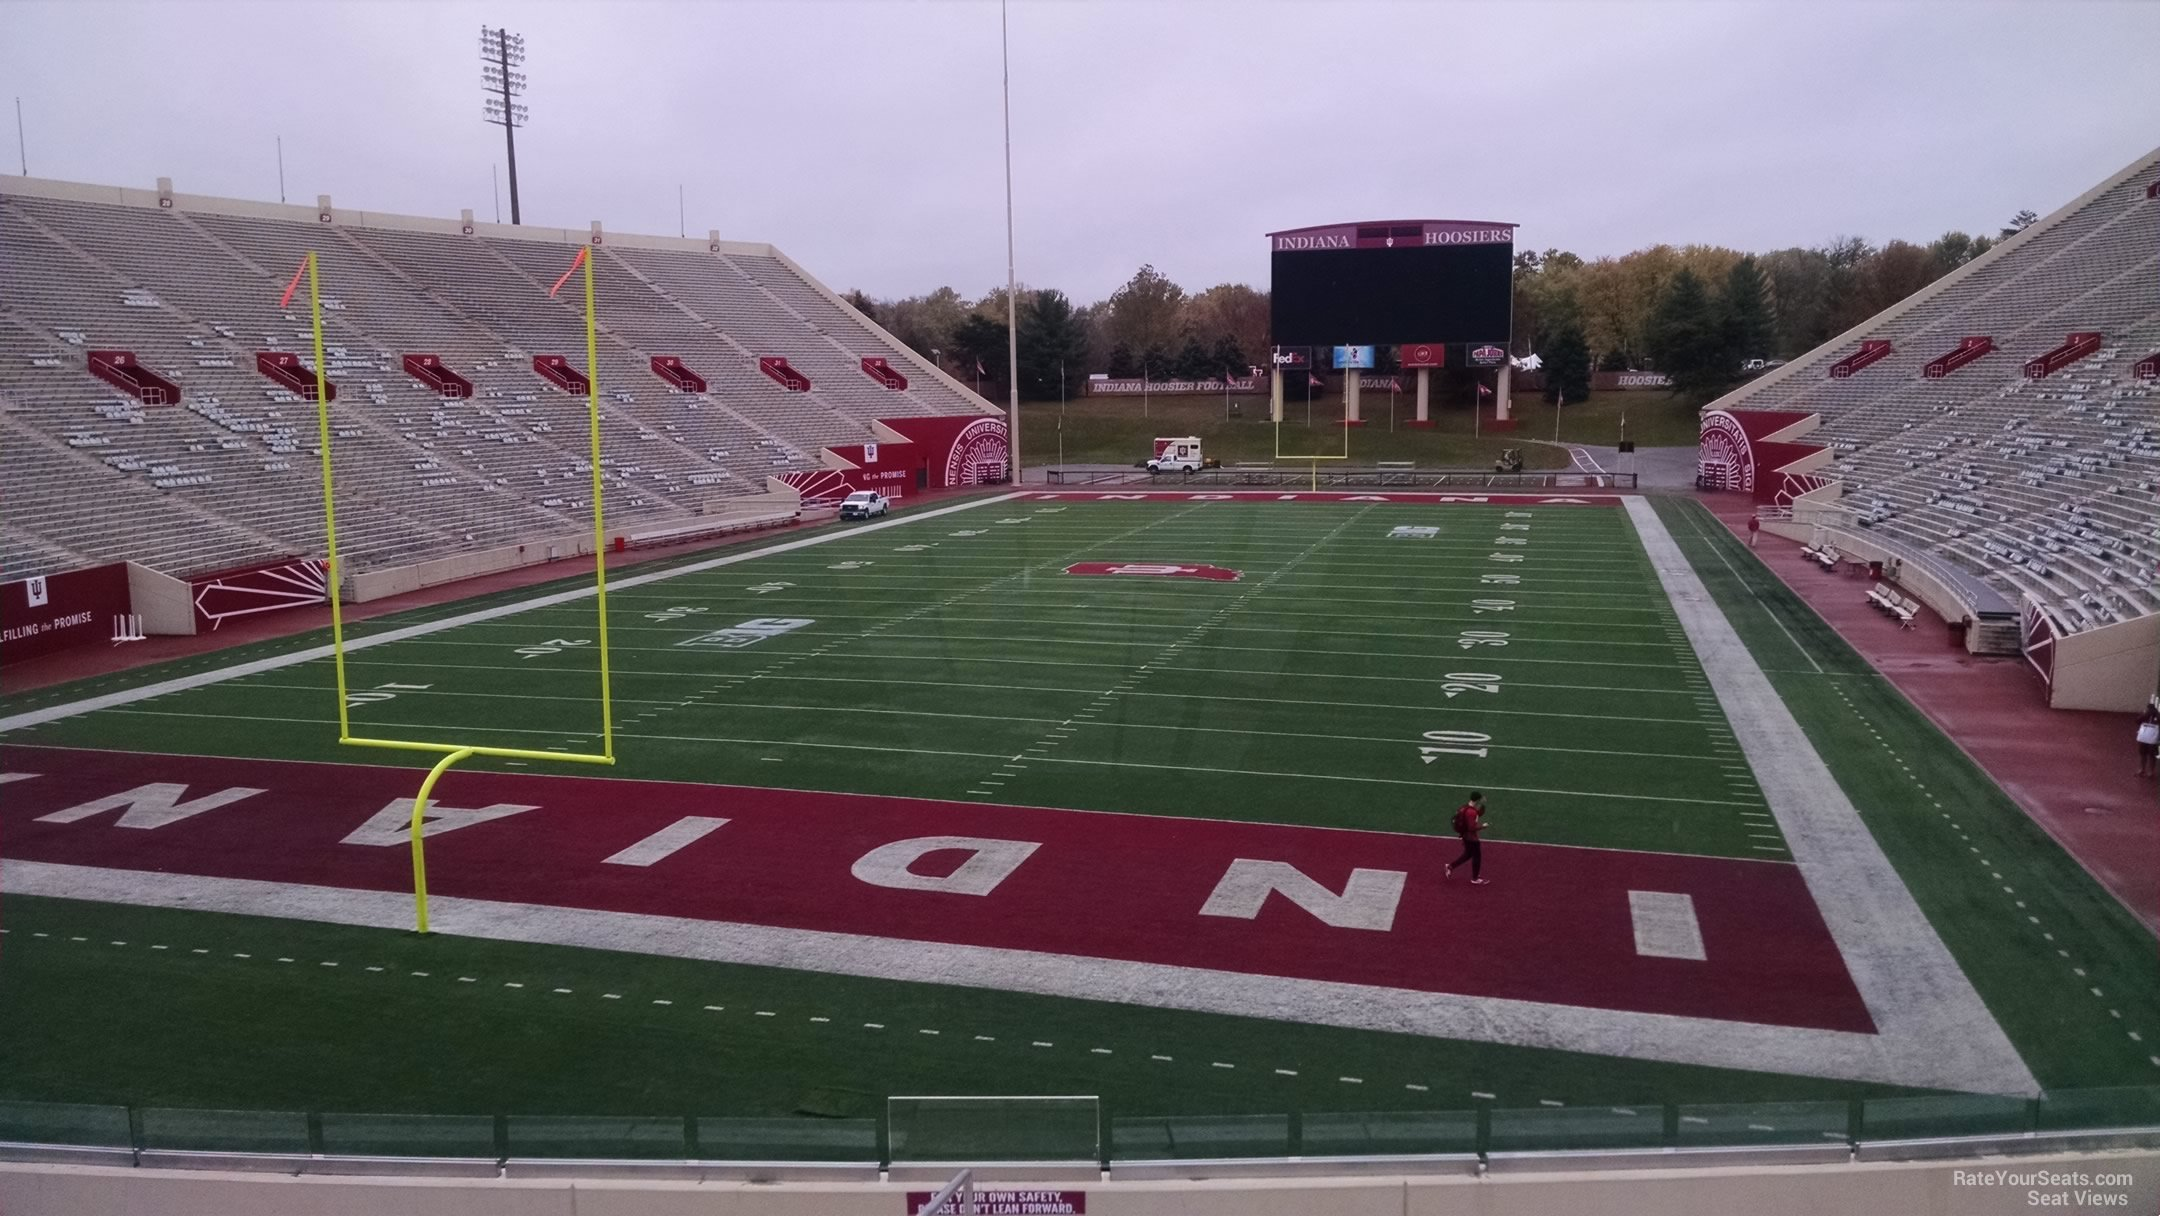 Seat View for Memorial Stadium - IN Section 15, Row 30